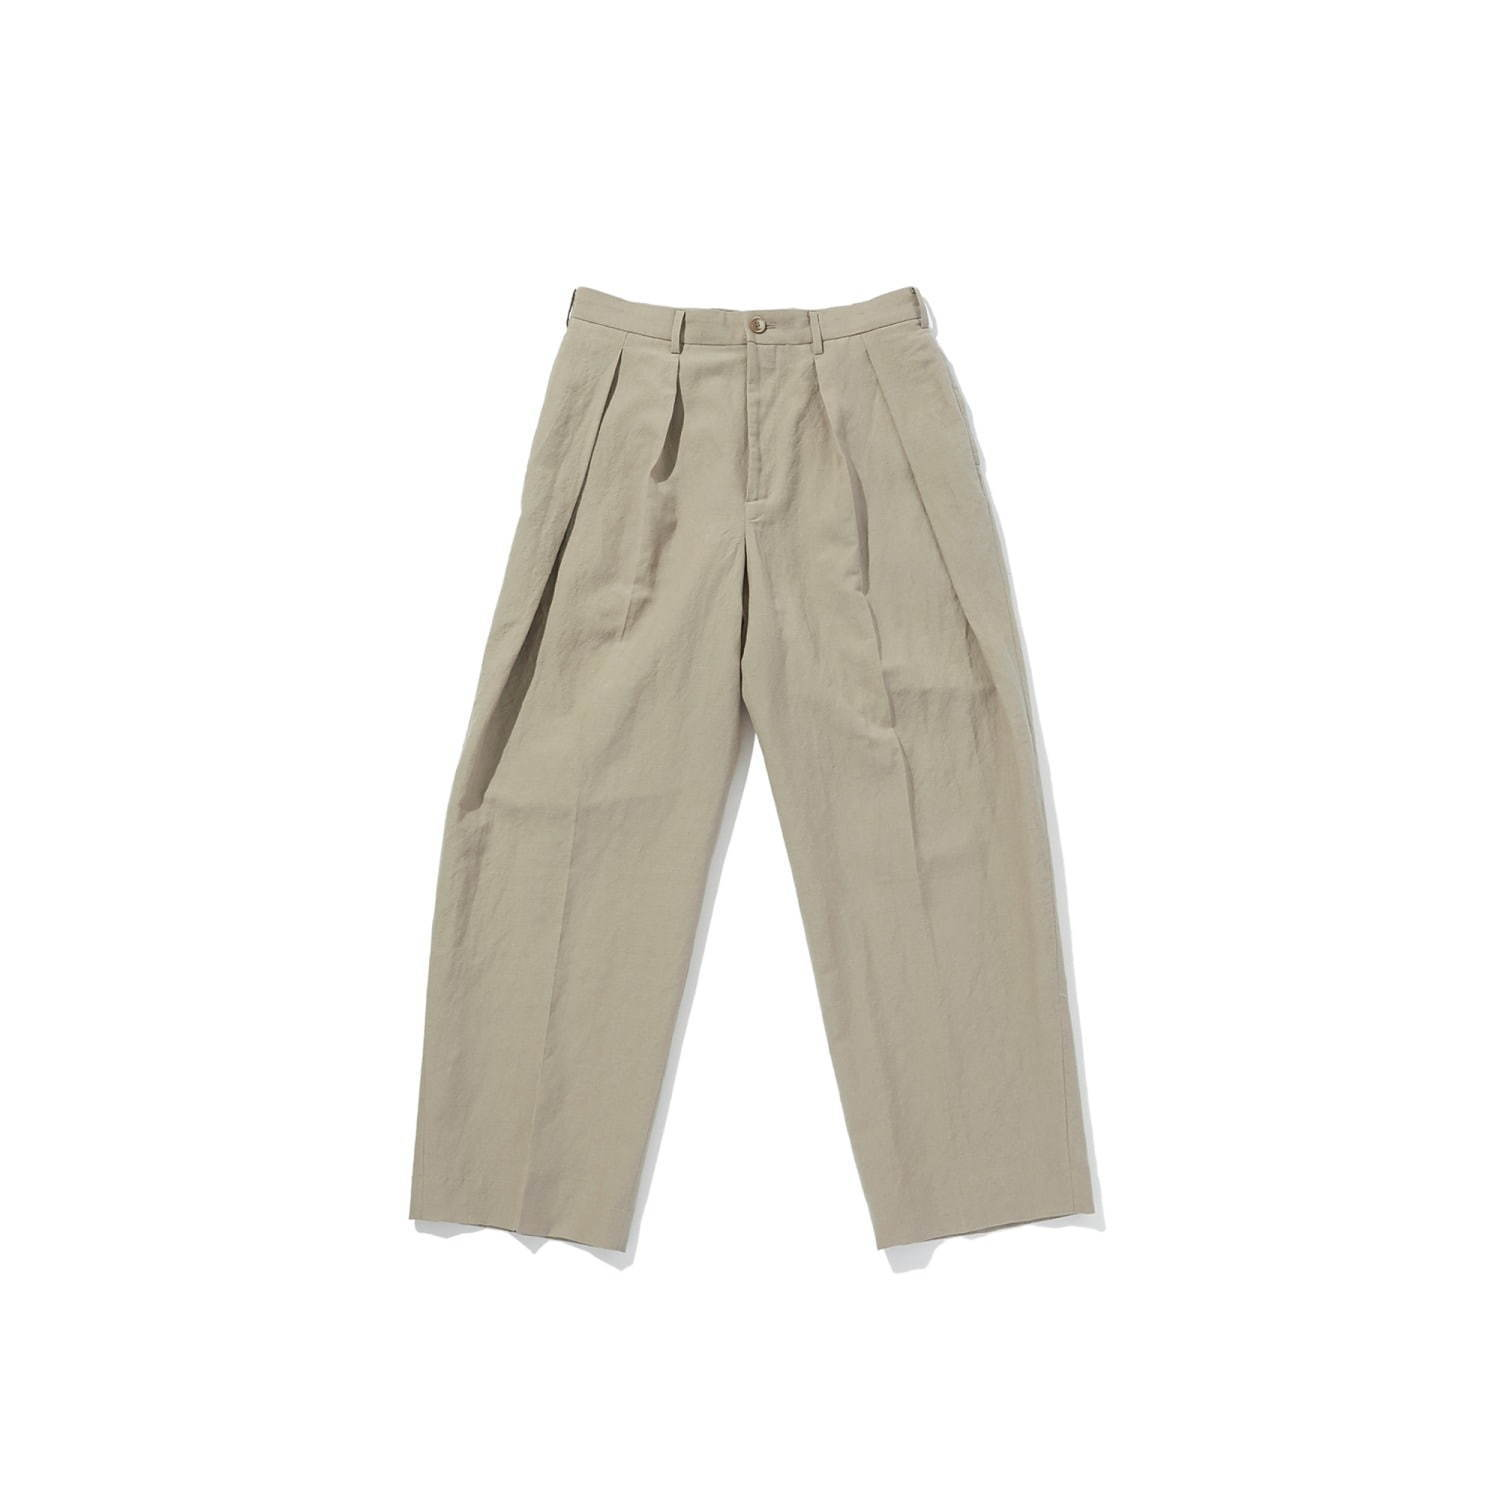 WIDE TAPERED PANTS 45,000円+税